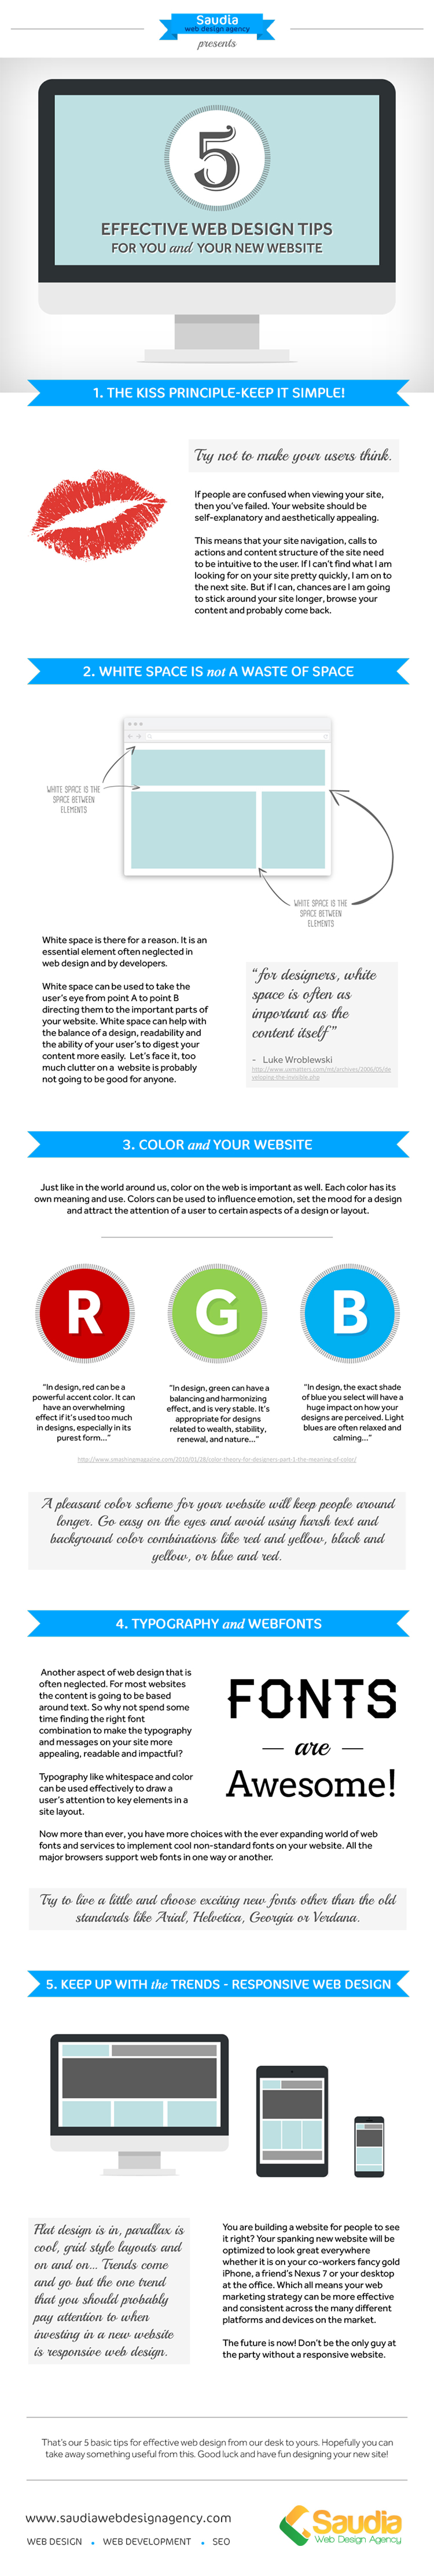 5 Effective Web Design Tips Infographic